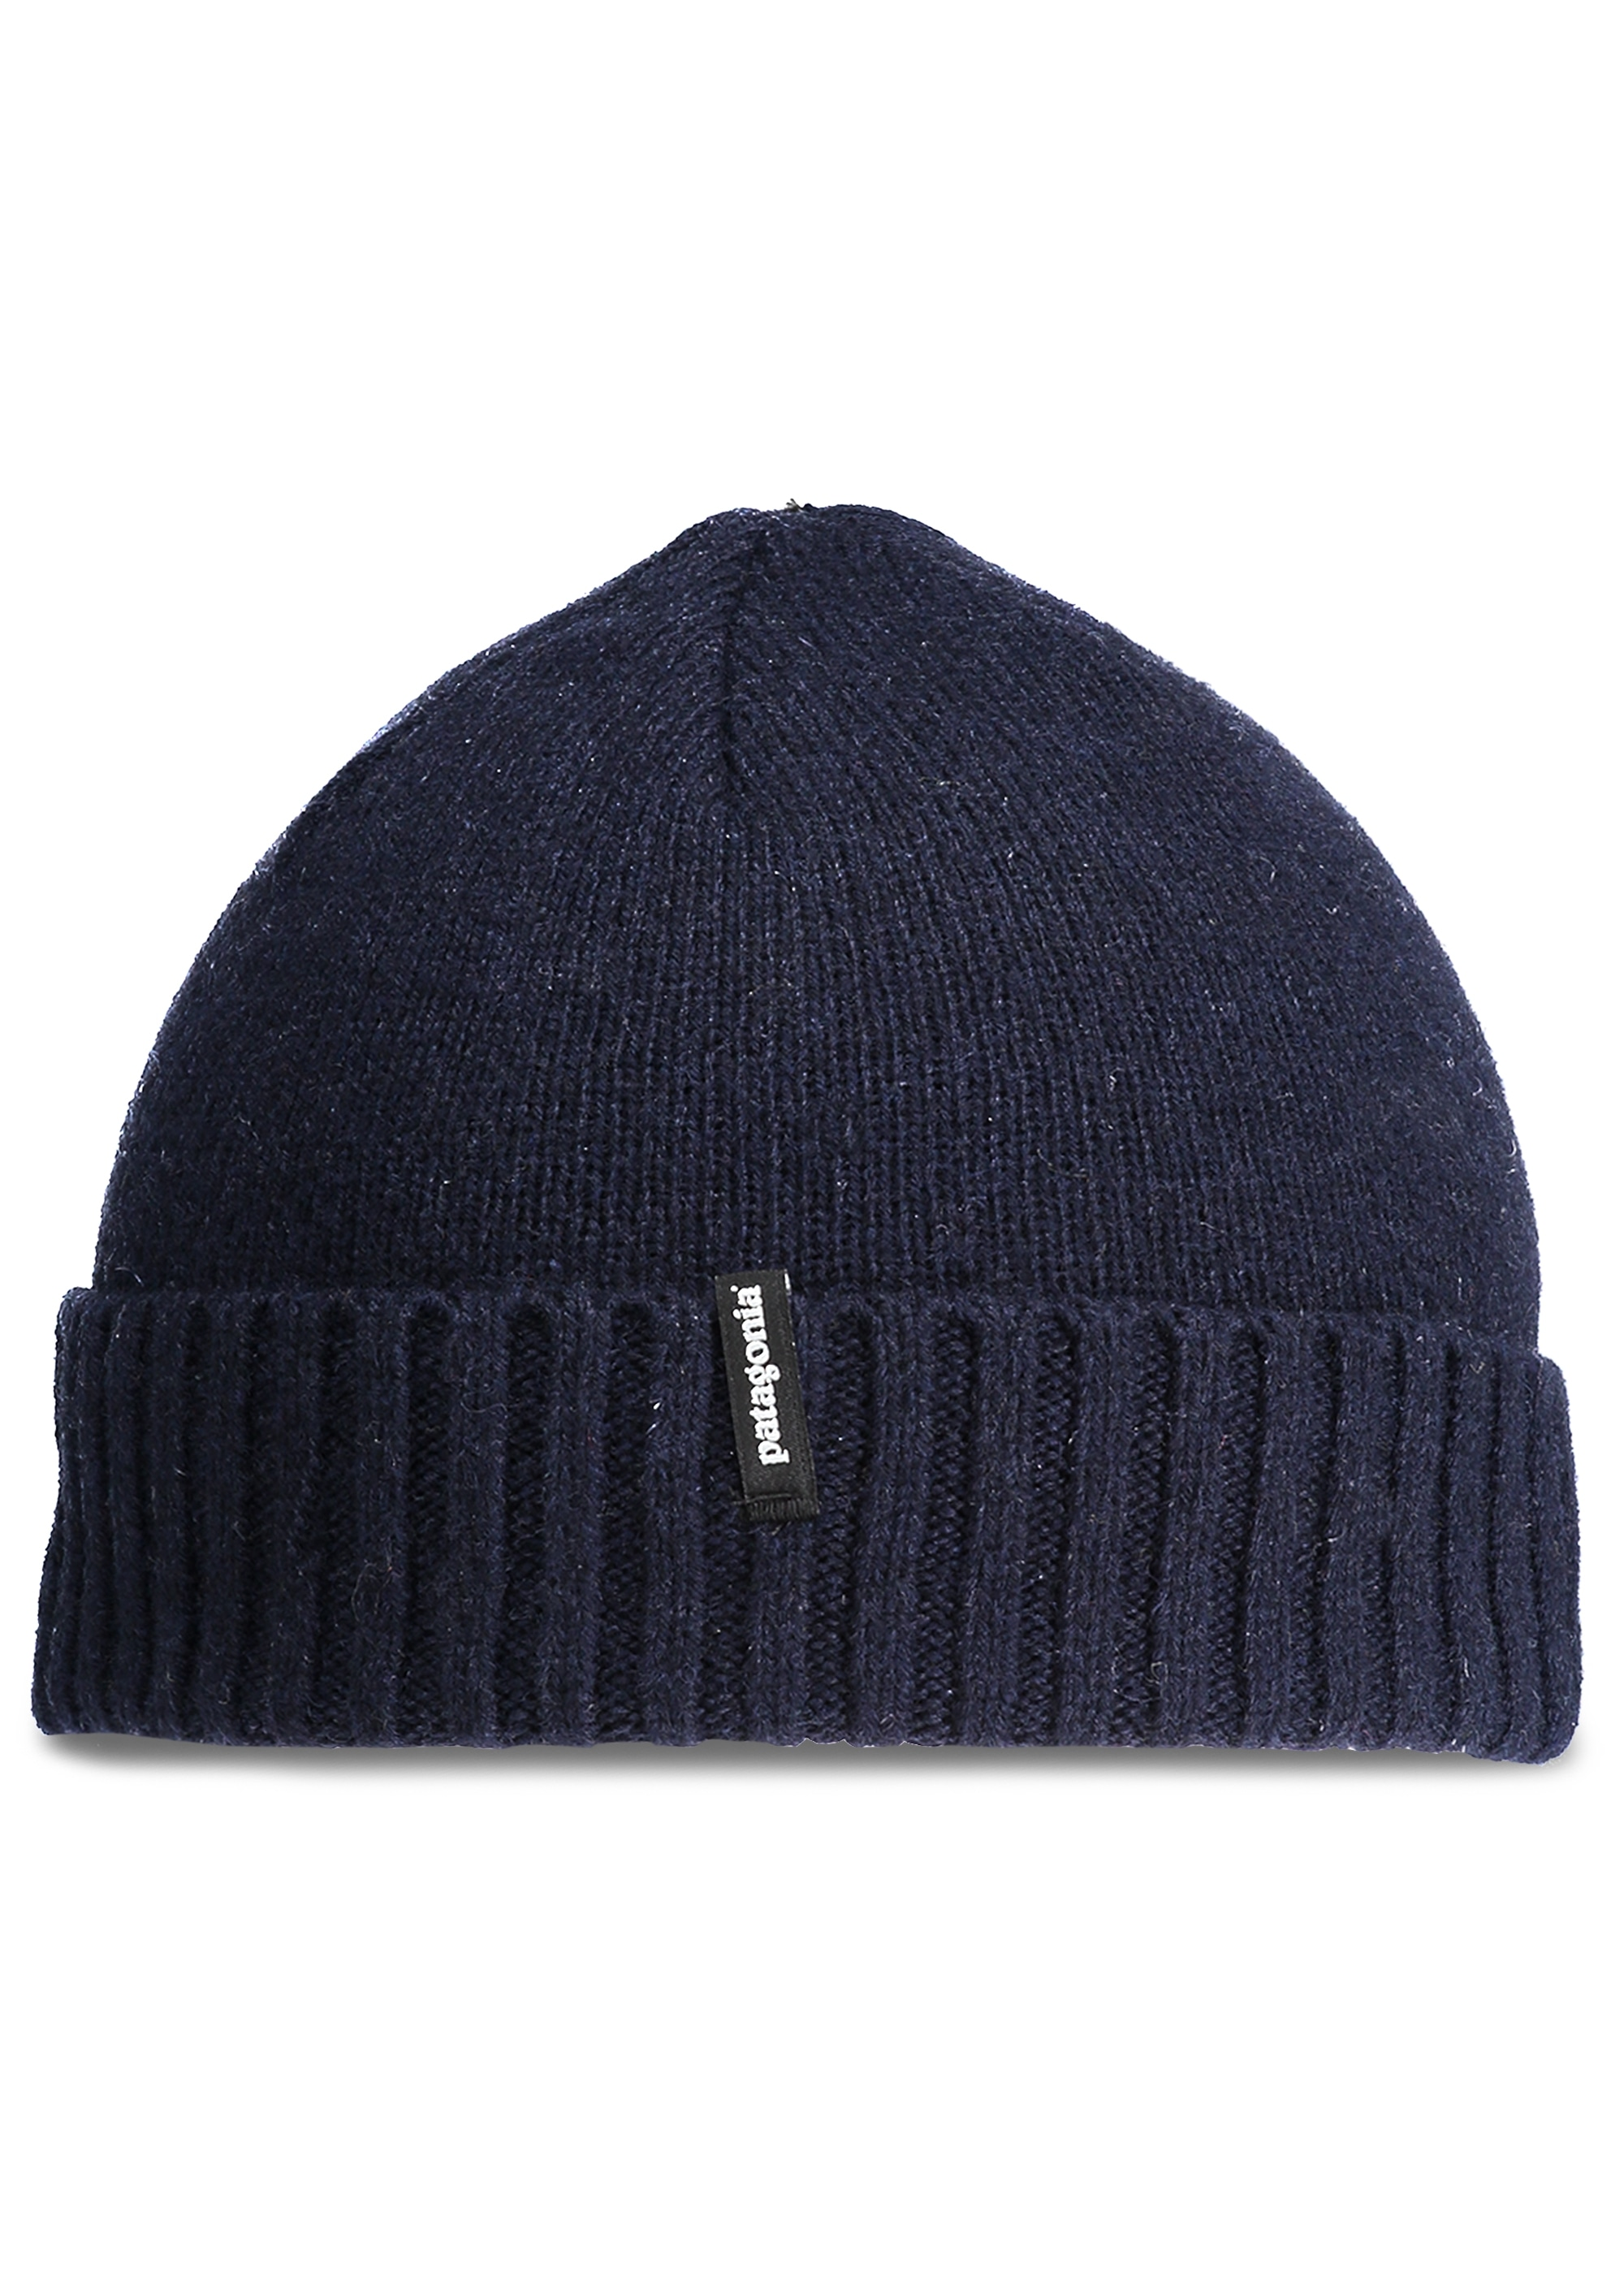 Patagonia Brodeo Beanie - Navy Blue - Triads Mens from Triads UK 4a540b3aa06